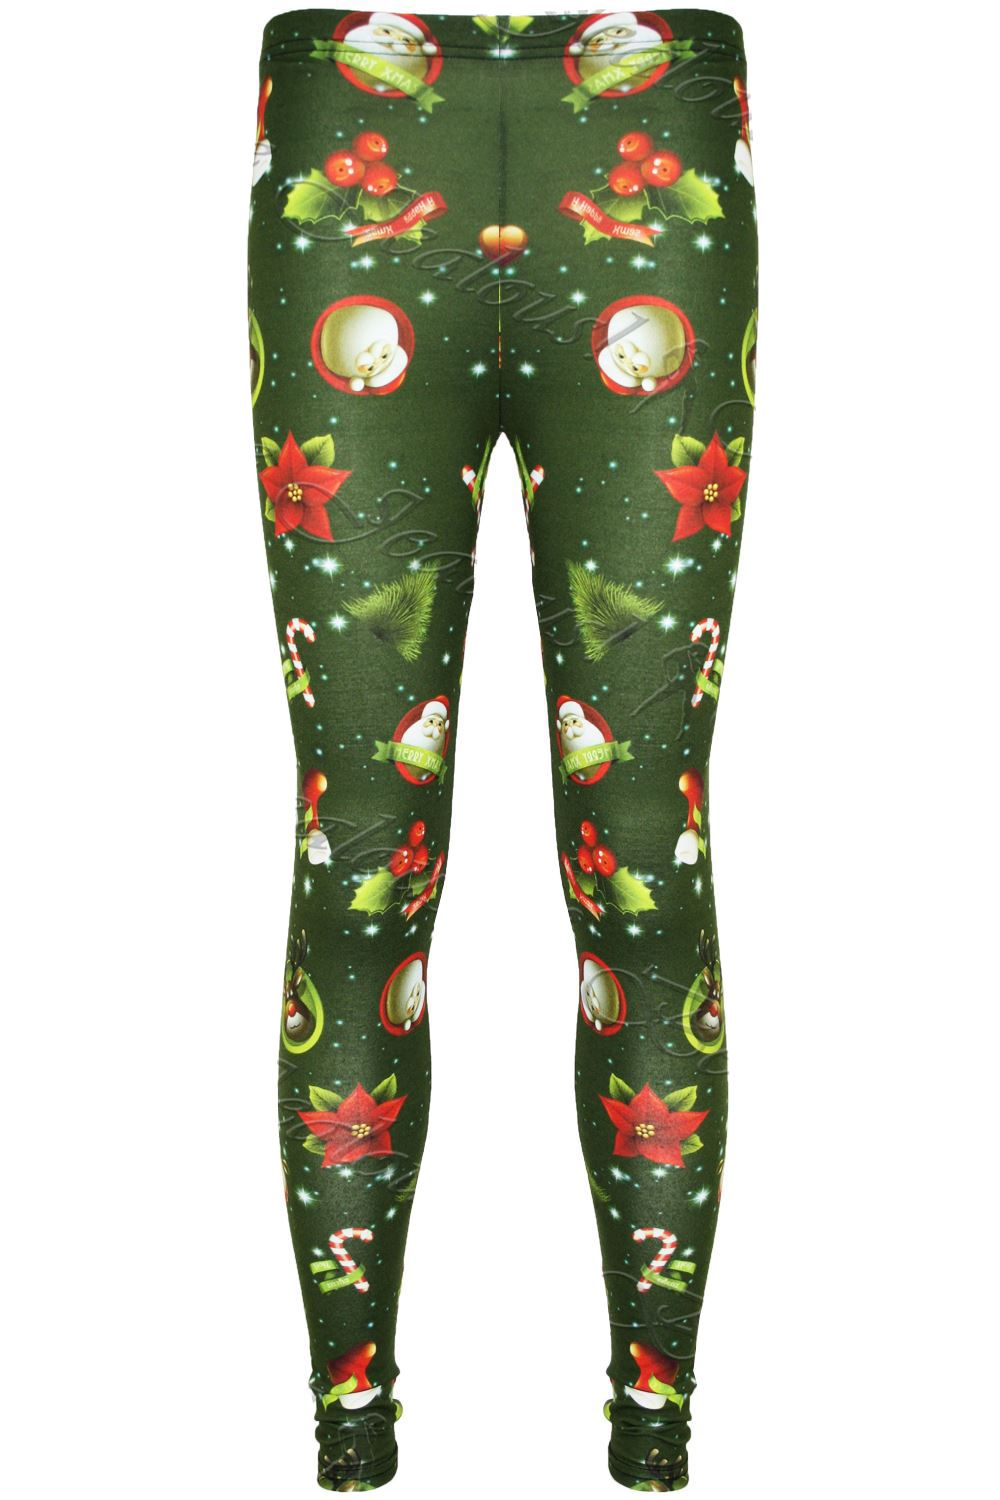 0bb1428d91ff7a Kids Girls Christmas Leggings Snowman Tree Stretchy Full Ankle ...